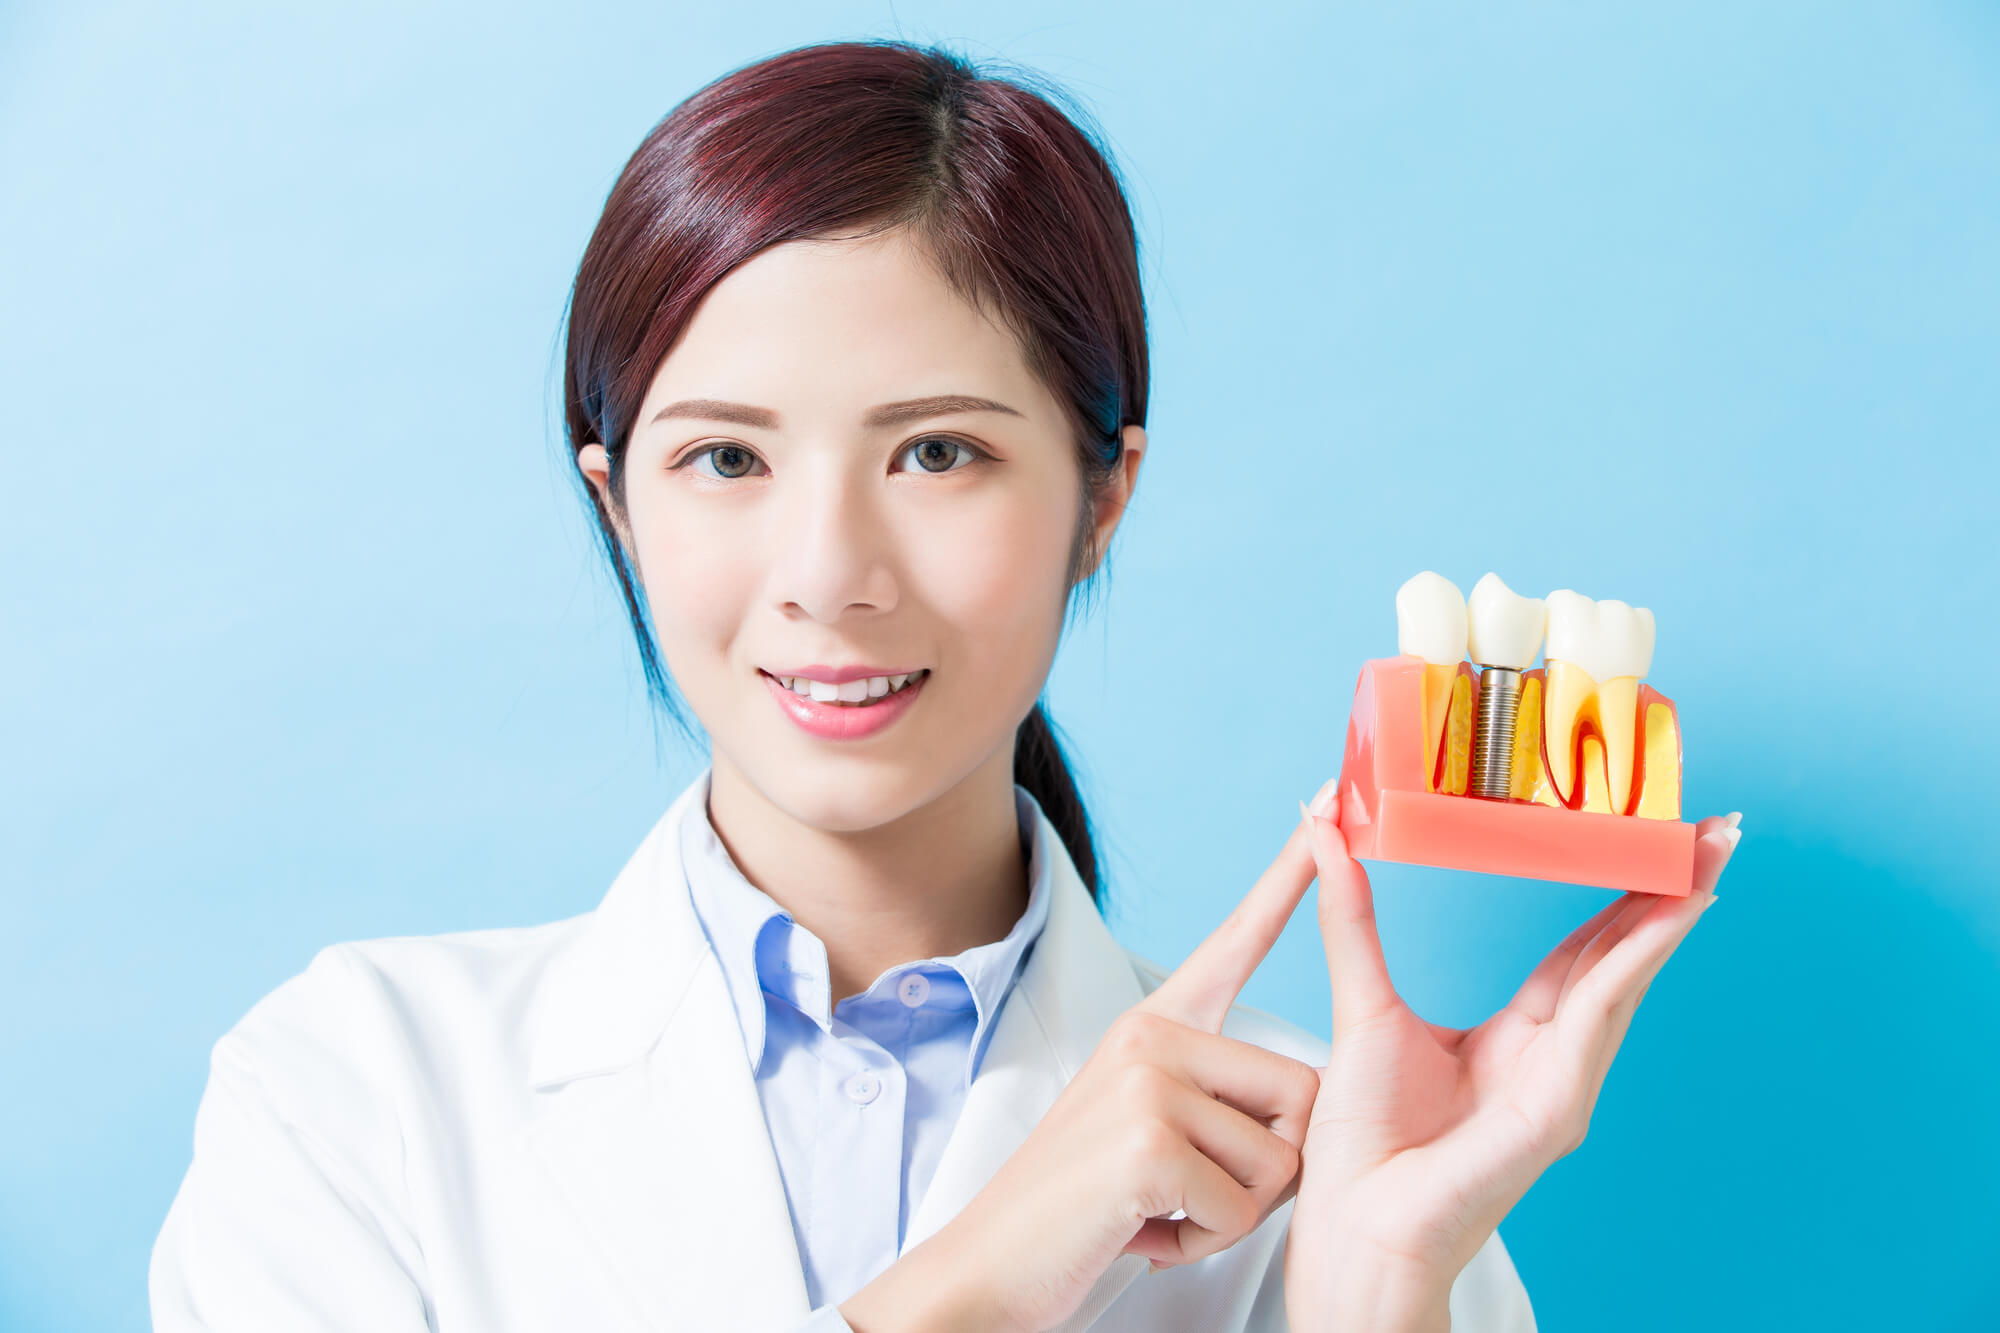 Who is the best Oral surgeon coral springs?